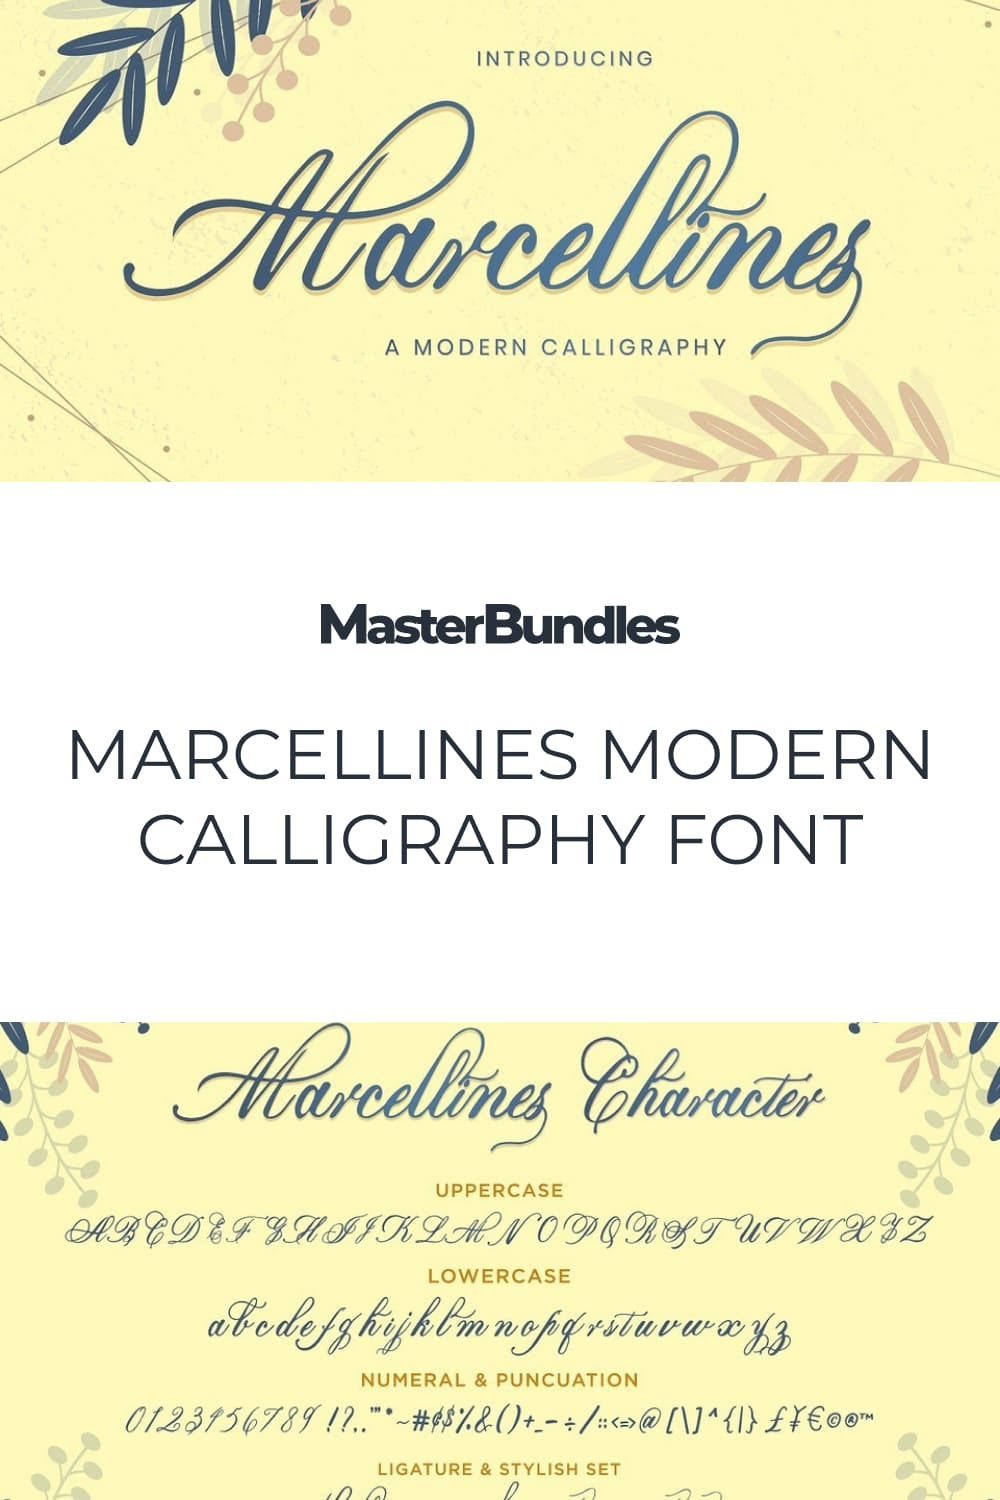 This is a Modern Calligraphy Font. This font is made by handwriting directly using a brush pen.